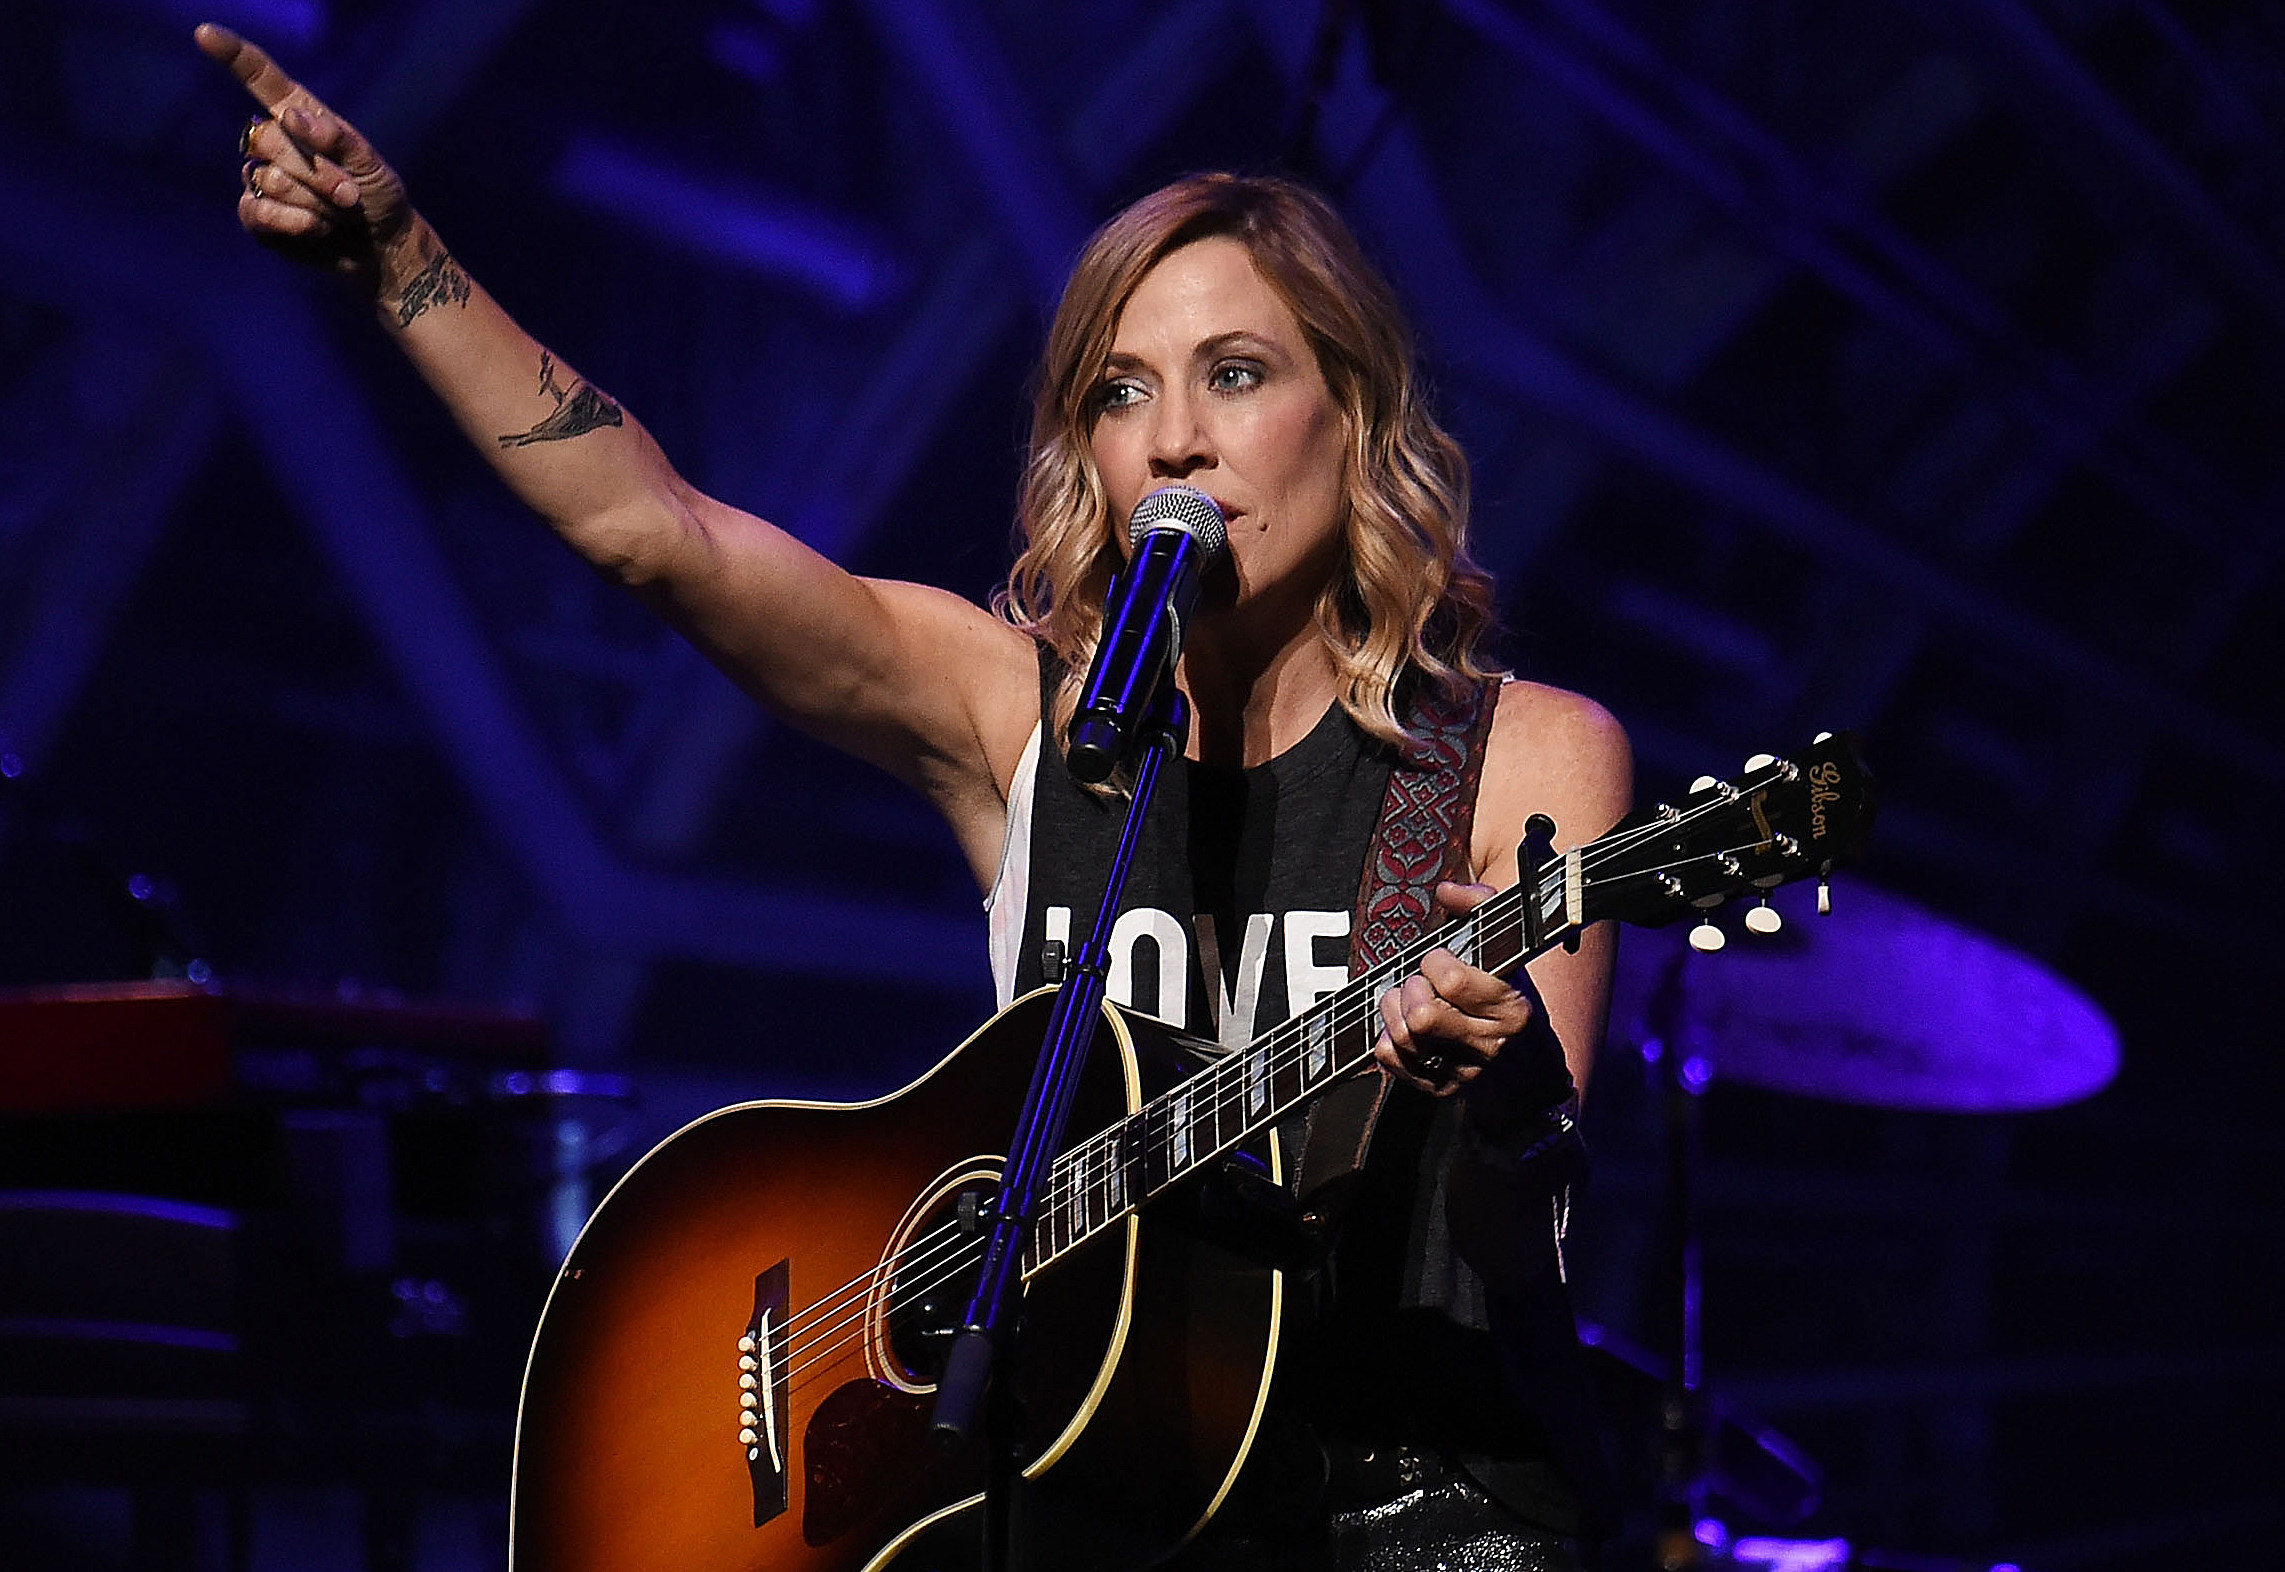 Sheryl Crow Debates Gun Control and Freedom of Speech on Twitter